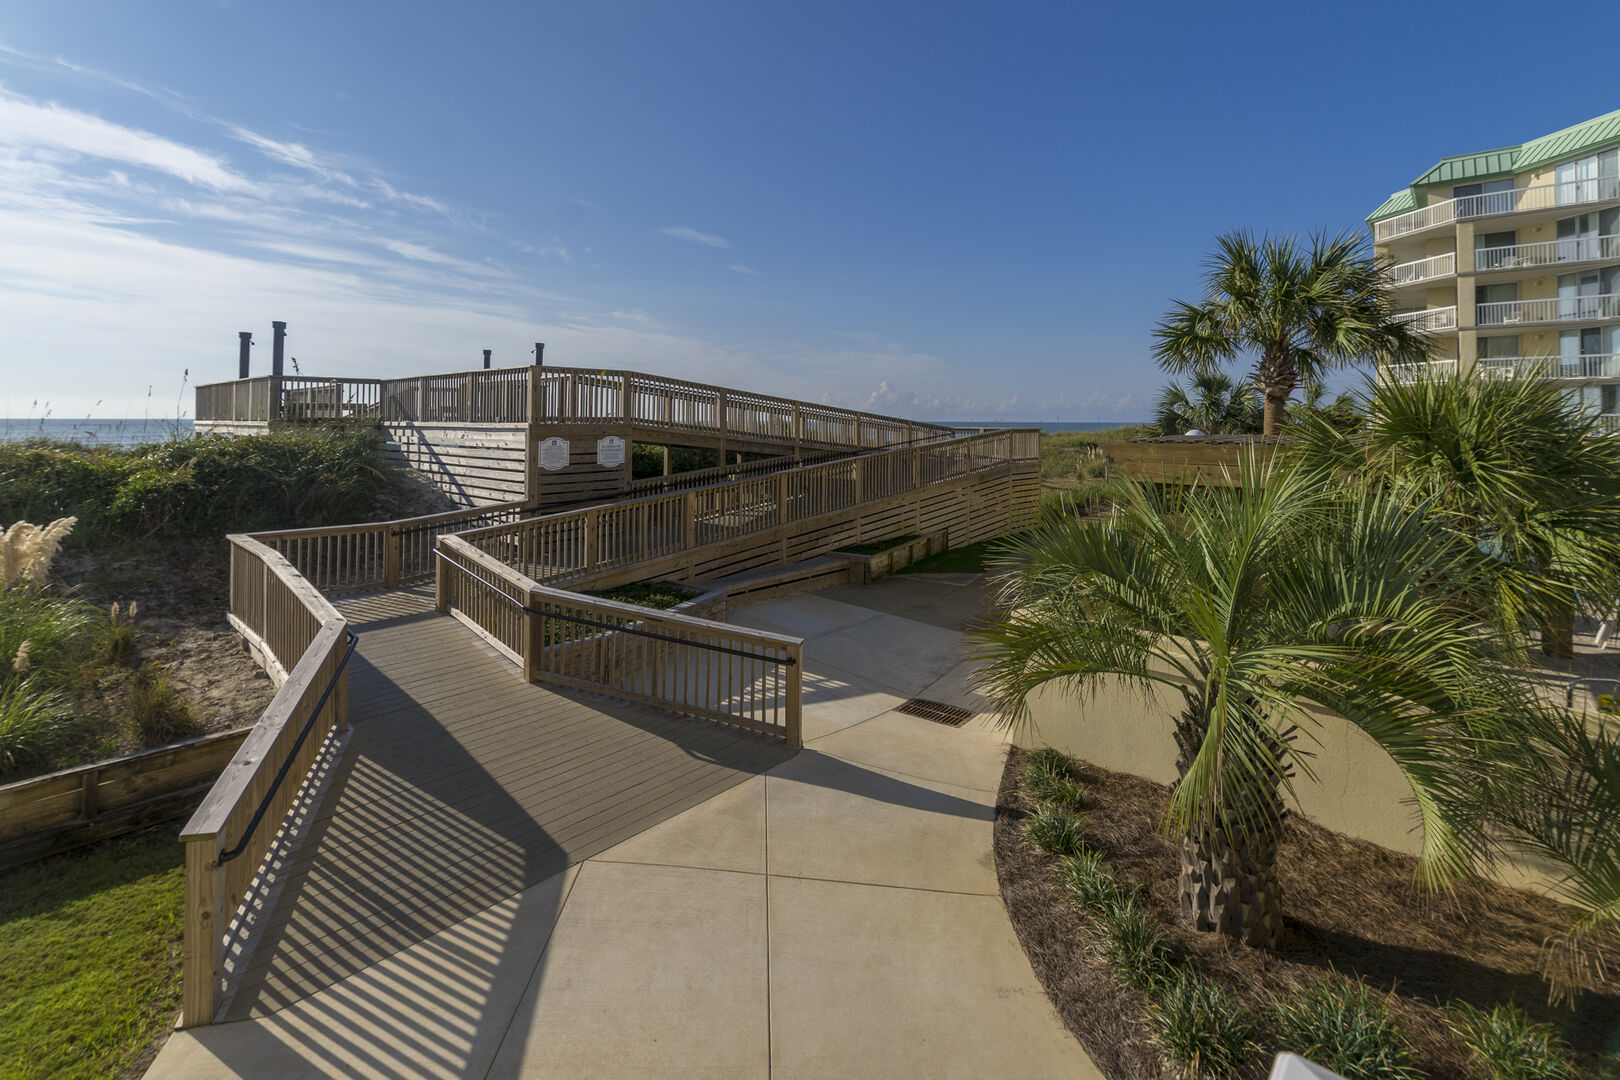 Handicap Accessible Beach Walkway